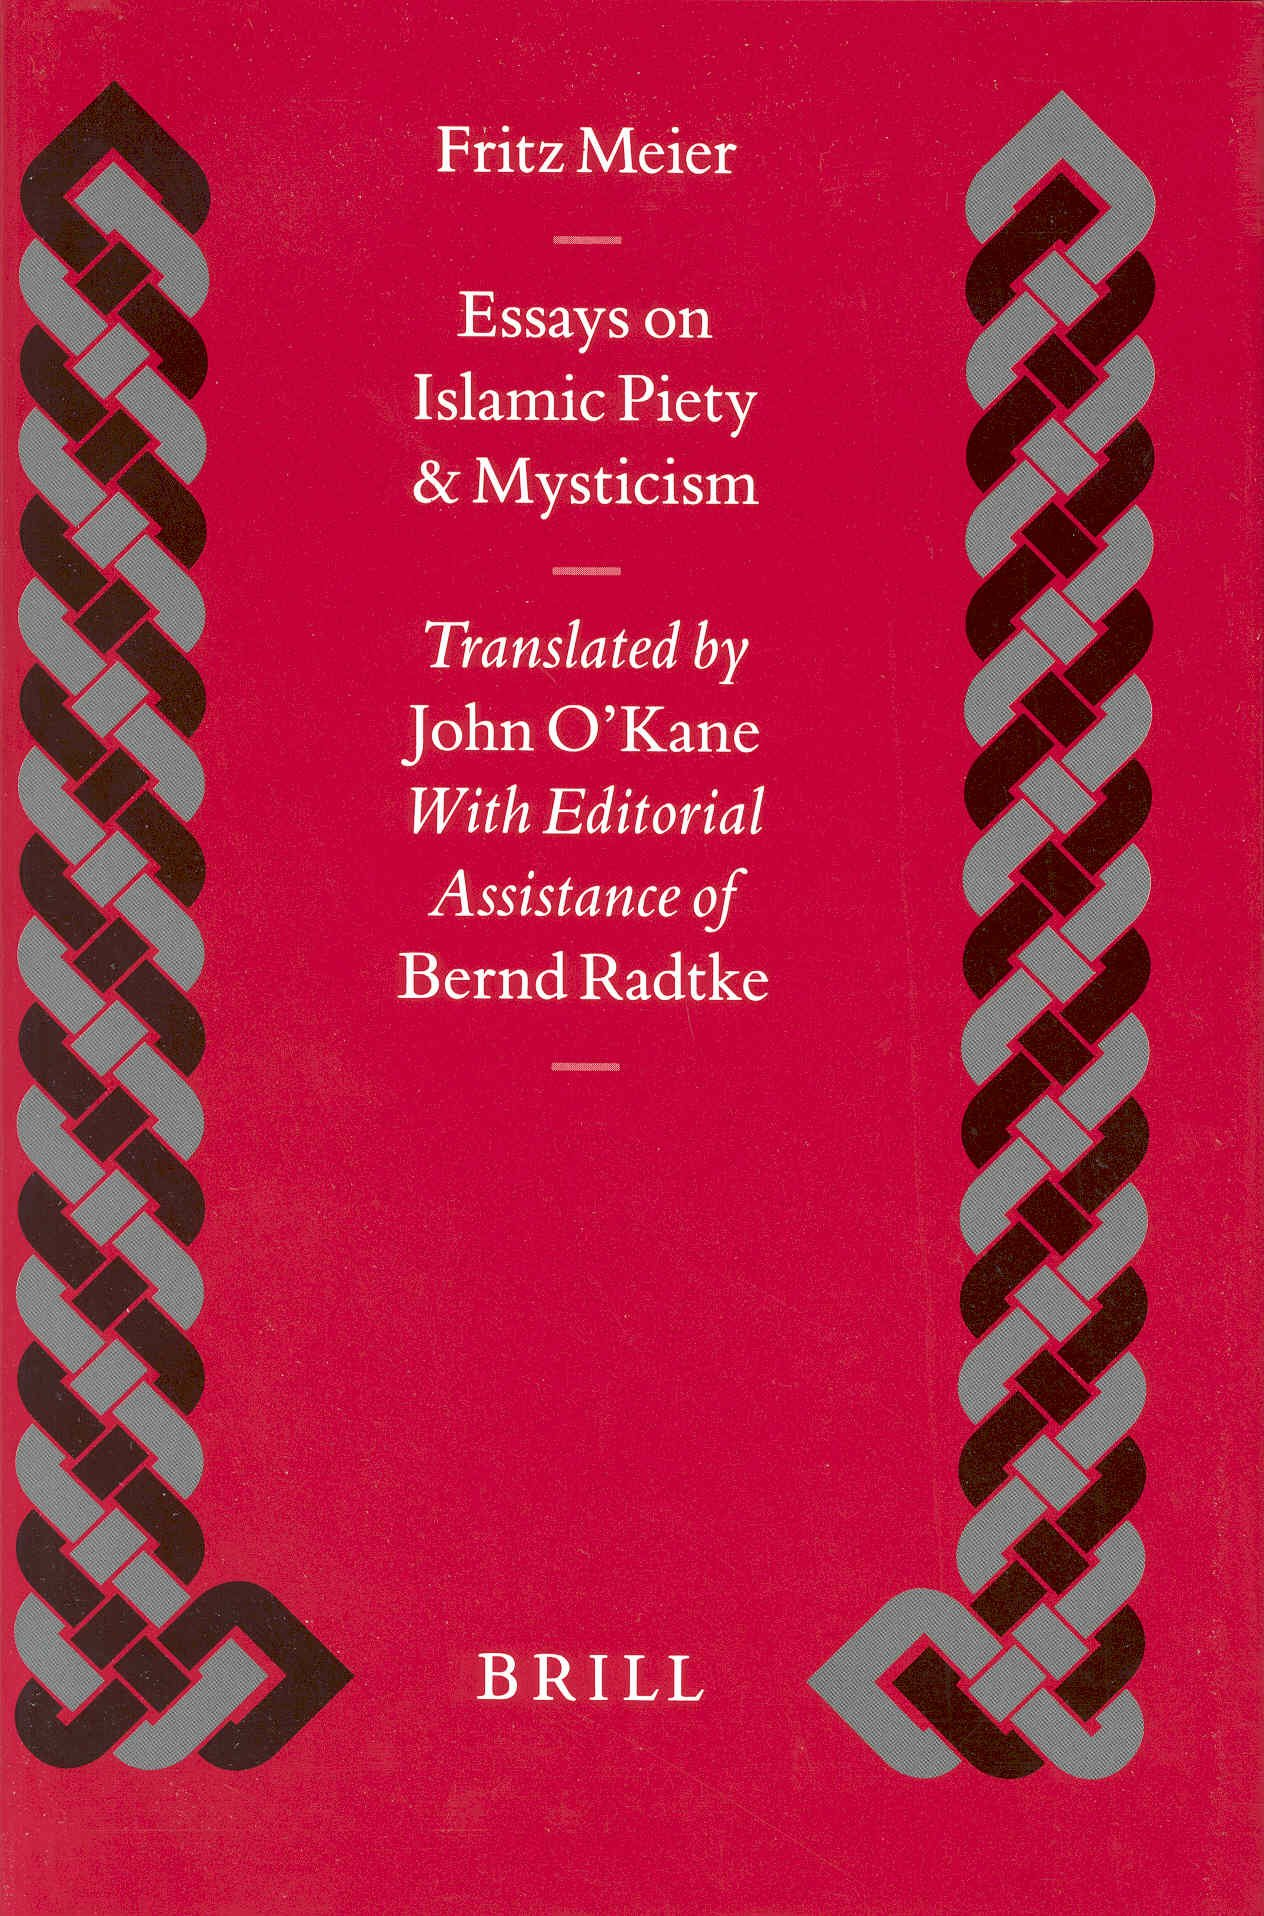 com essays on islamic piety and mysticism islamic history  com essays on islamic piety and mysticism islamic history and civilization 9789004108653 meier o kane bernd radtke jan peter wissink books